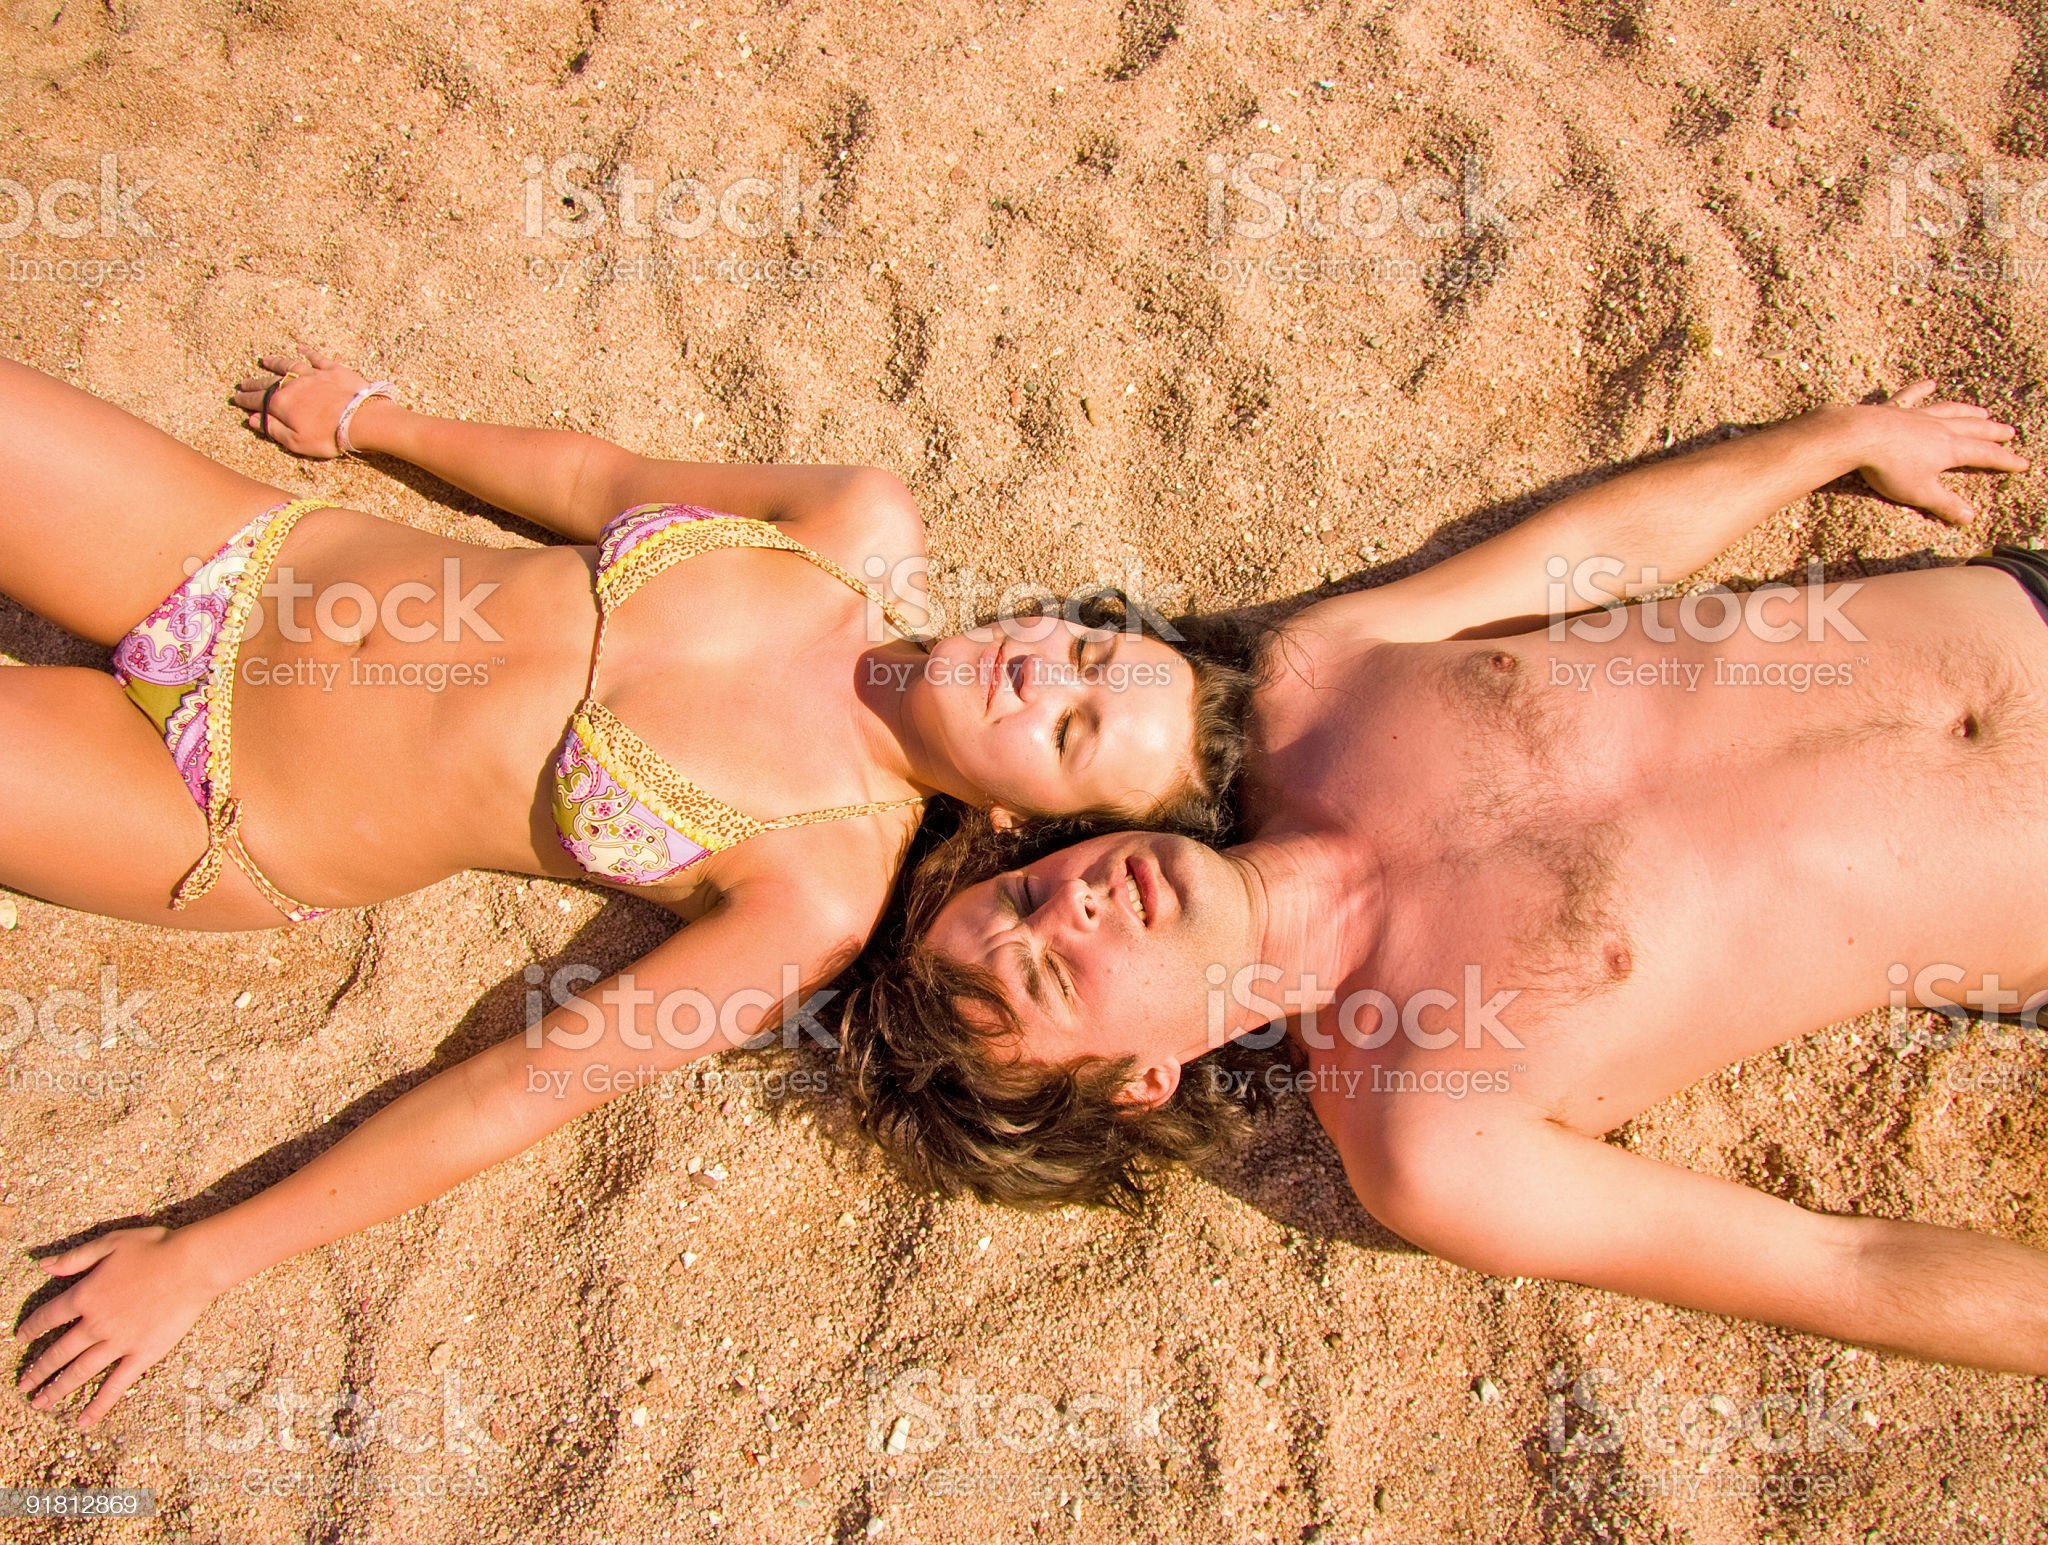 Happy together! royalty-free stock photo